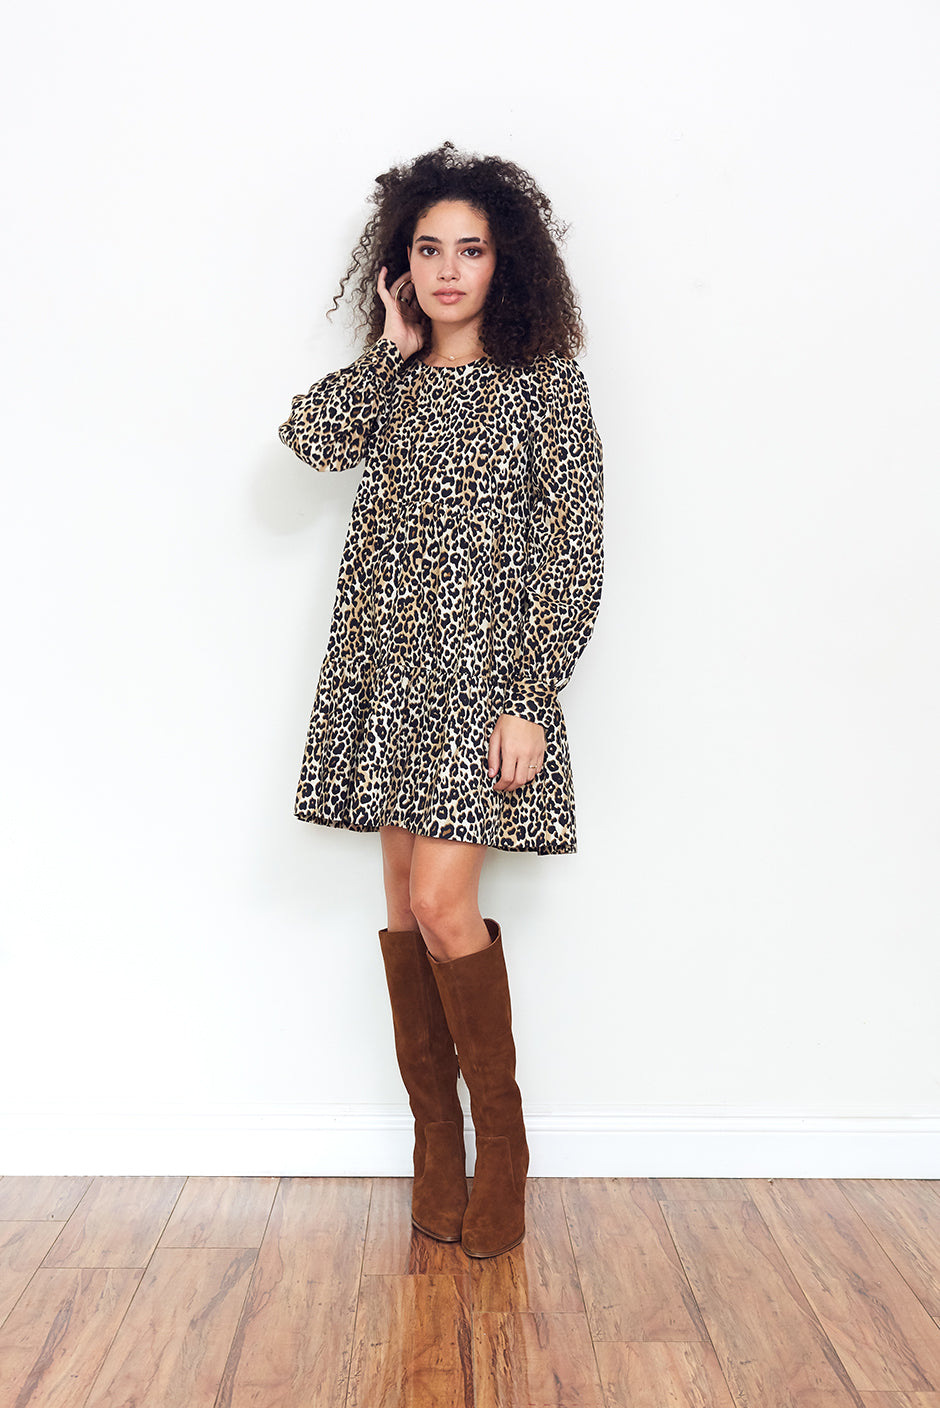 Olivia Mini Dress in Cheetah Queen print for women by Paneros Clothing. From sustainable deadstock cotton poplin. Front View.